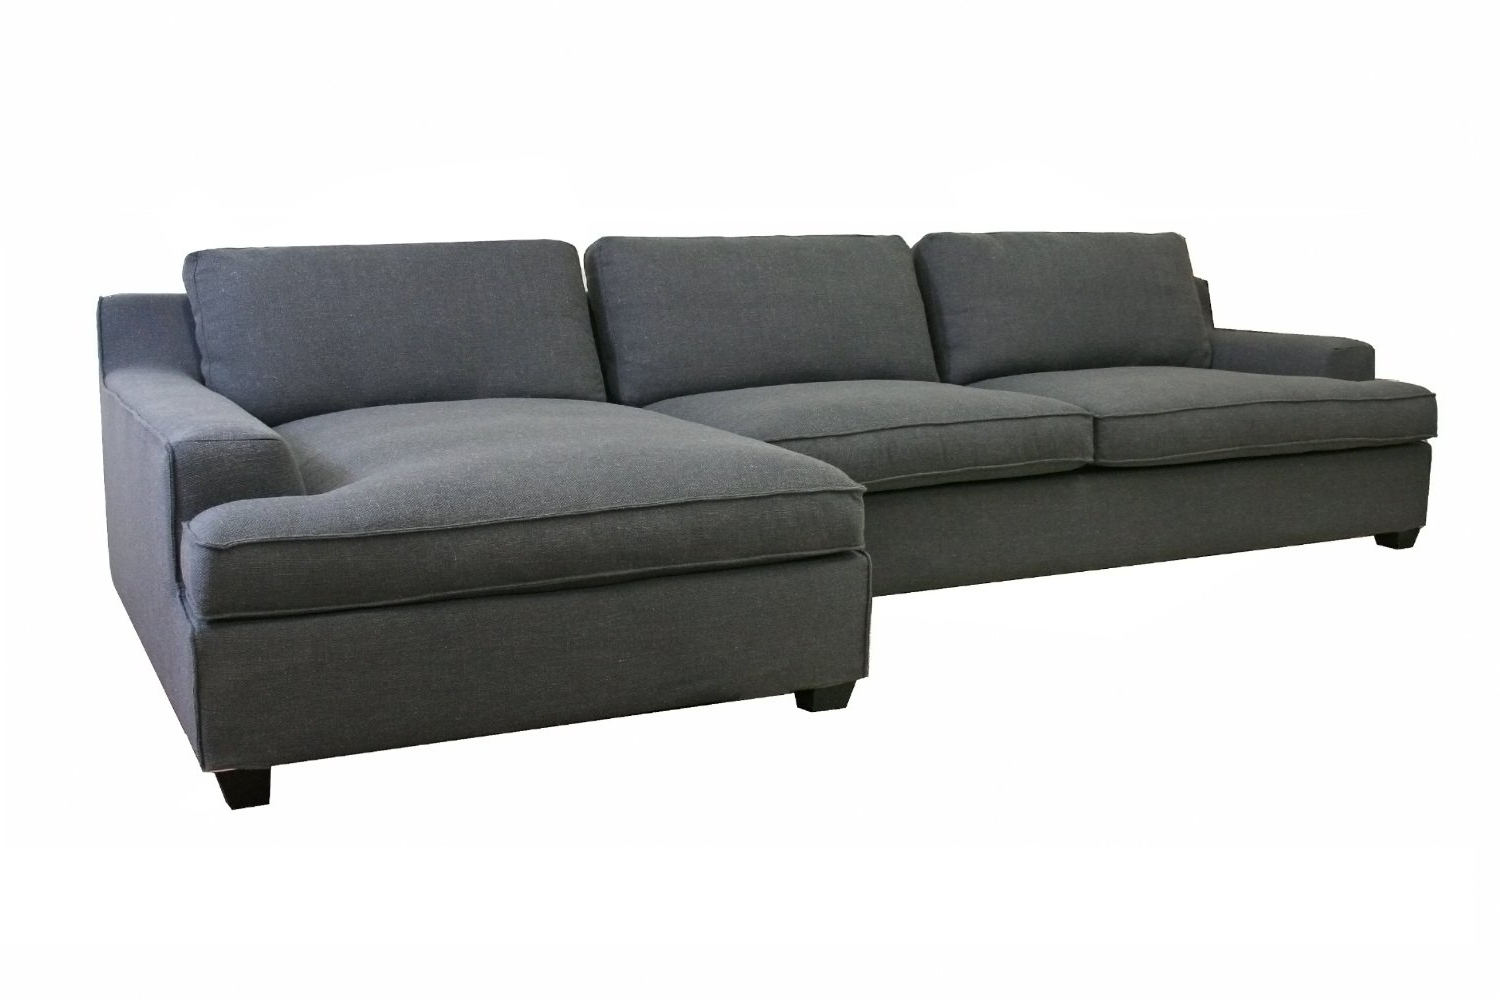 Leather Loveseat With Chaise 72 Inch Sofa Sectional Sleeper Sofa With Regard To Most Recent Small Couches With Chaise Lounge (View 6 of 15)